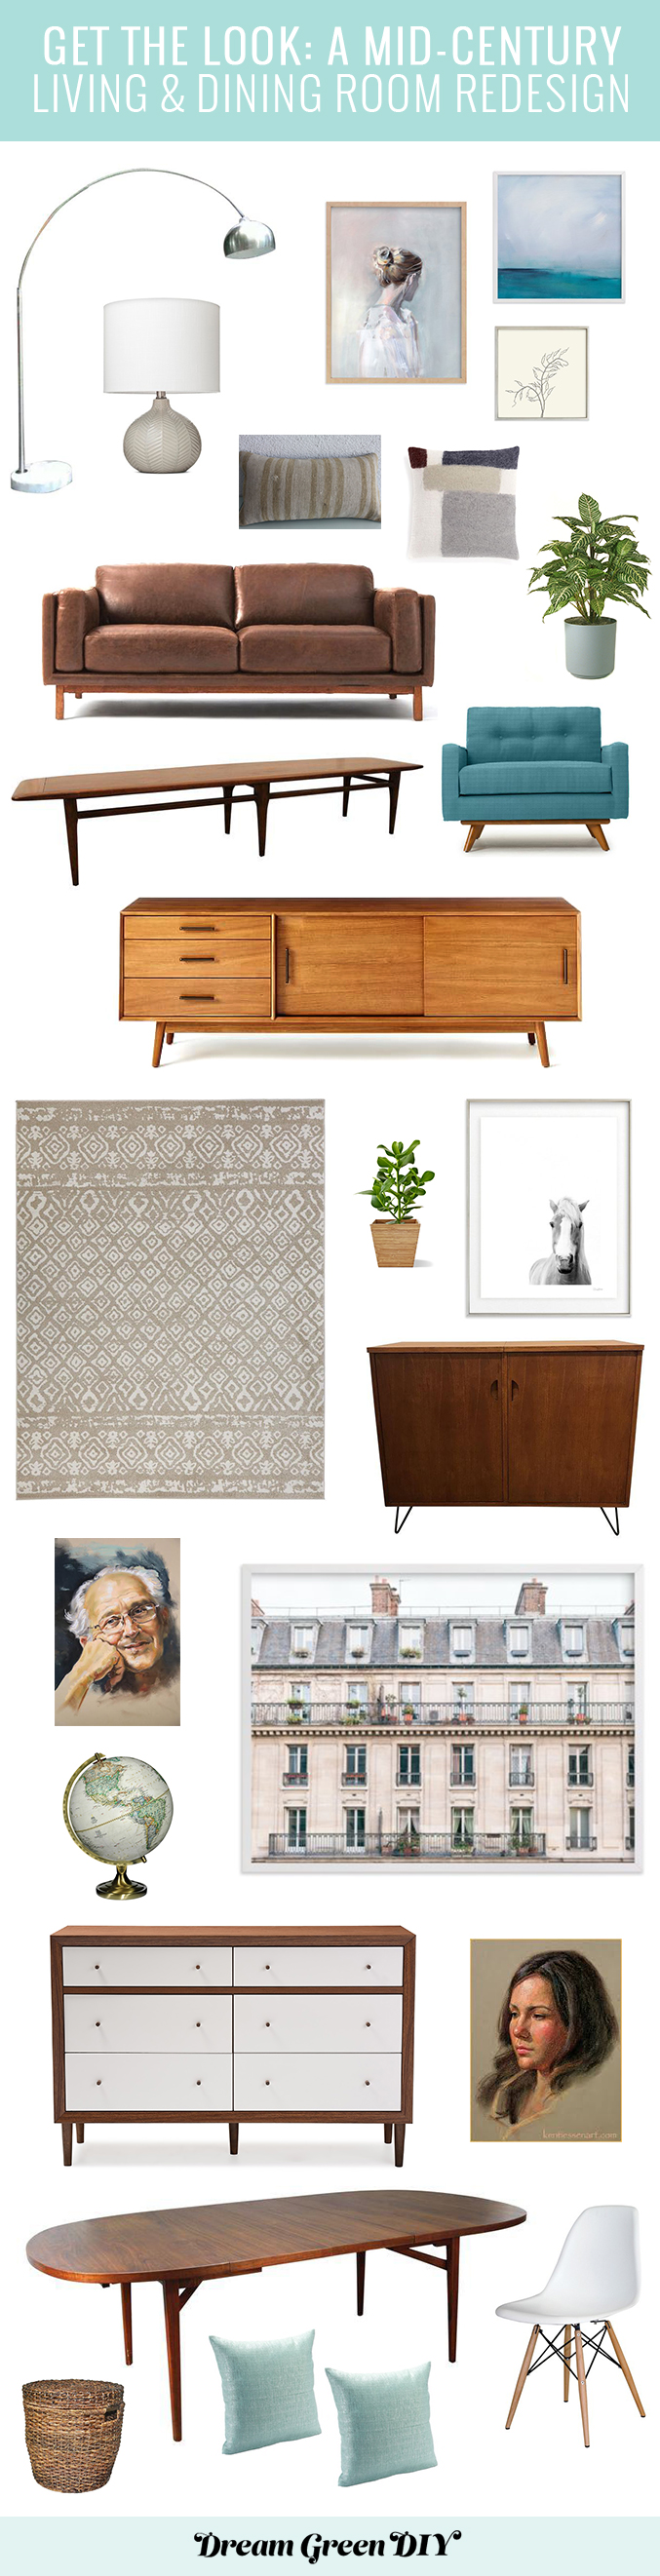 http://www.dreamgreendiy.com/wp-content/uploads/2017/01/14-38955-post/Plans-For-Our-Mid-Century-Living-Dining-Room-Redesign.jpg